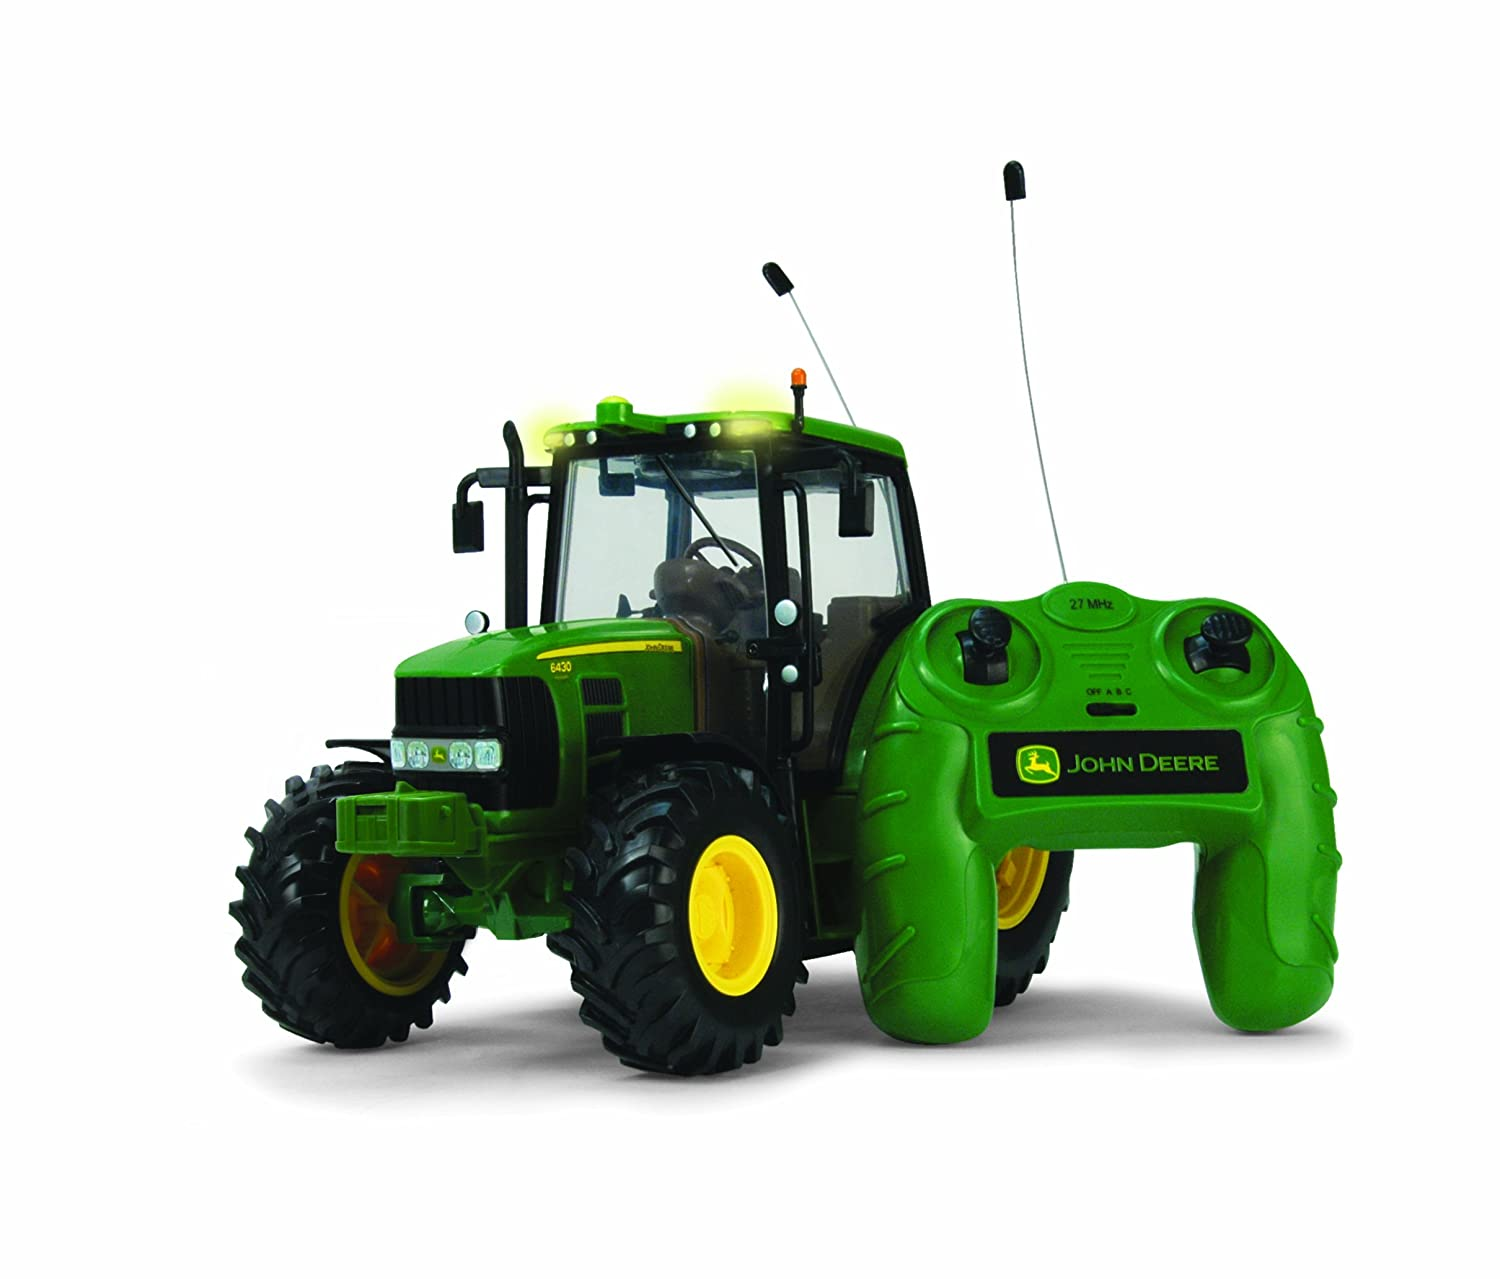 Britains Big Farm 6430 John Deere Remote Control Tractor: Amazon.co.uk:  Toys & Games